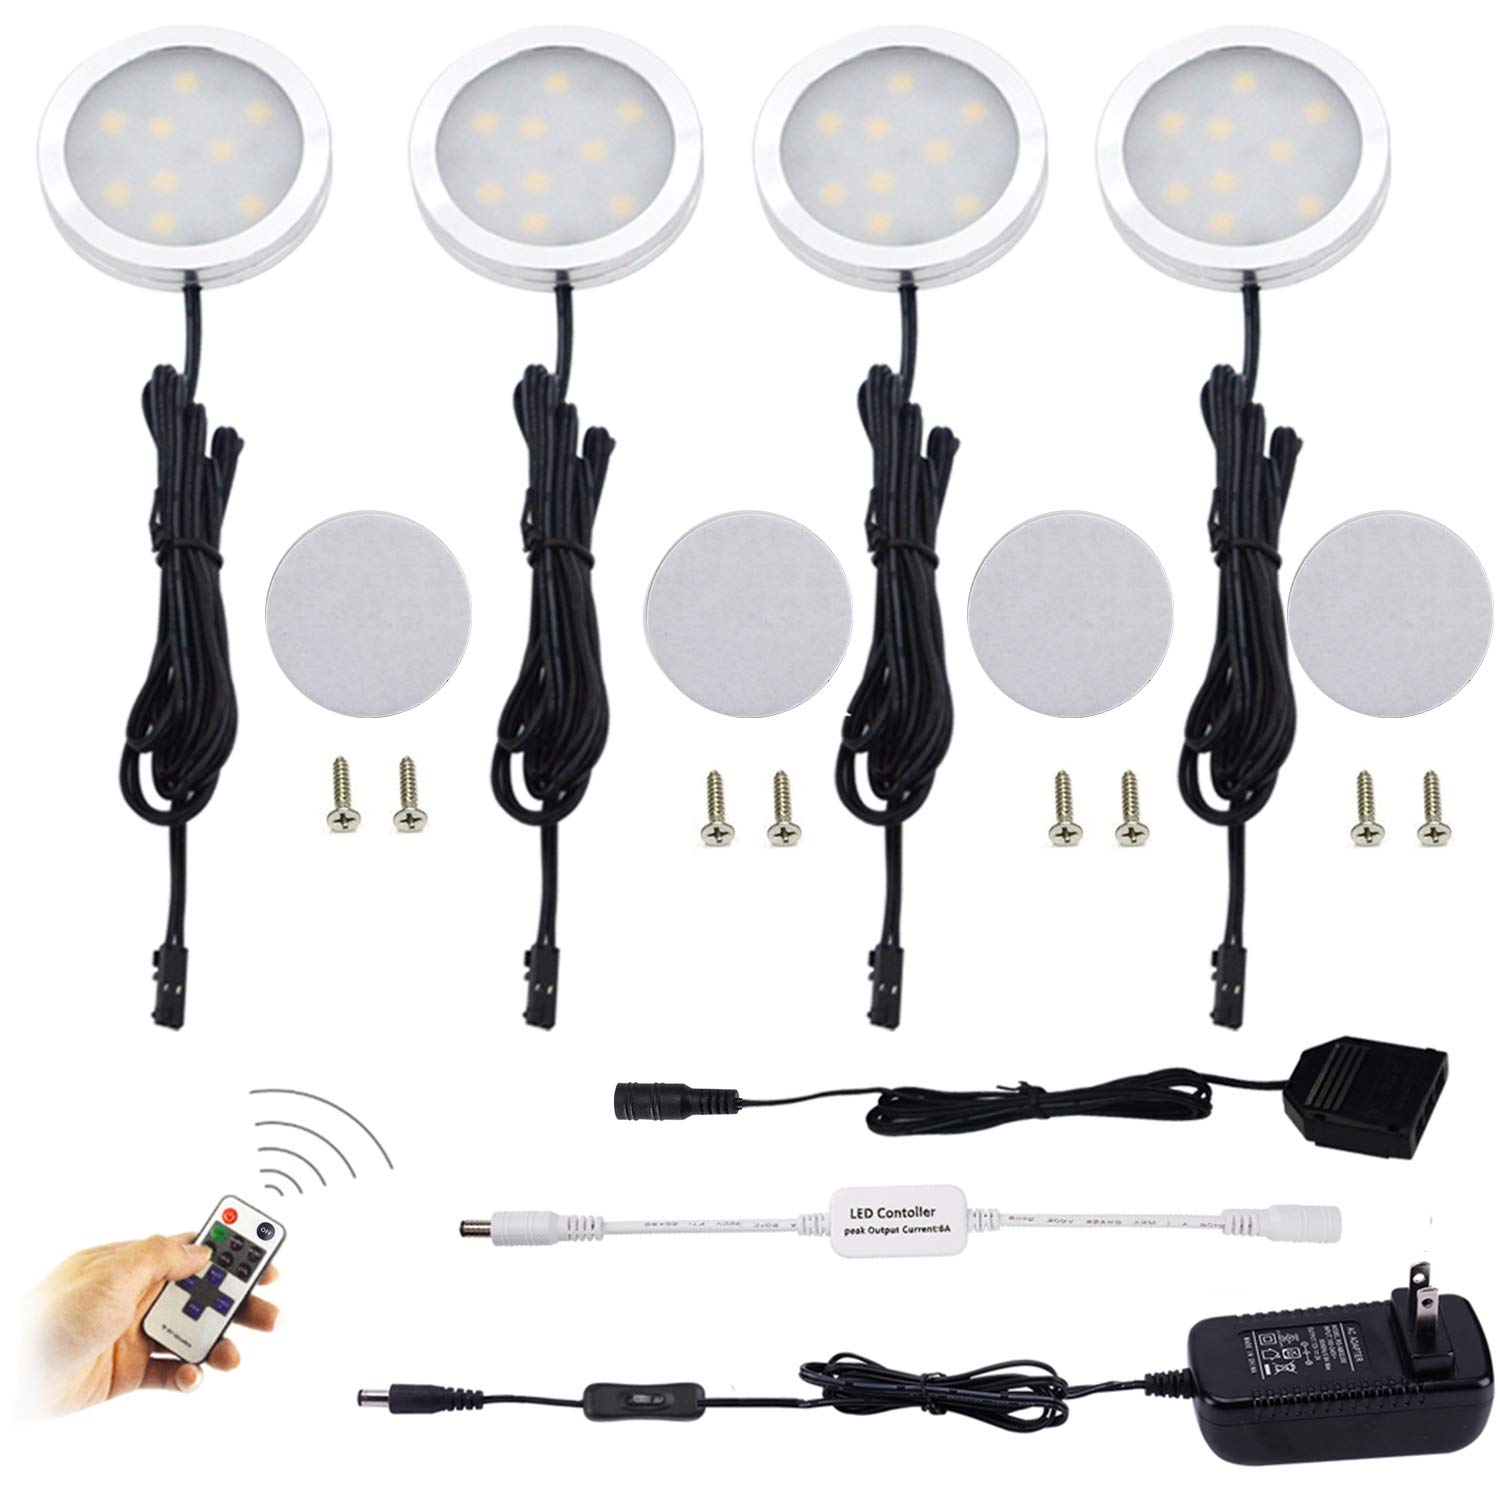 Warm White 2700K AIBOO LED Under Cabinet Lighting Kit,4X2W LED Puck Lights with RF Wireless Dimmable Controller and US Plug for Kitchen Lighting Accent Lighting